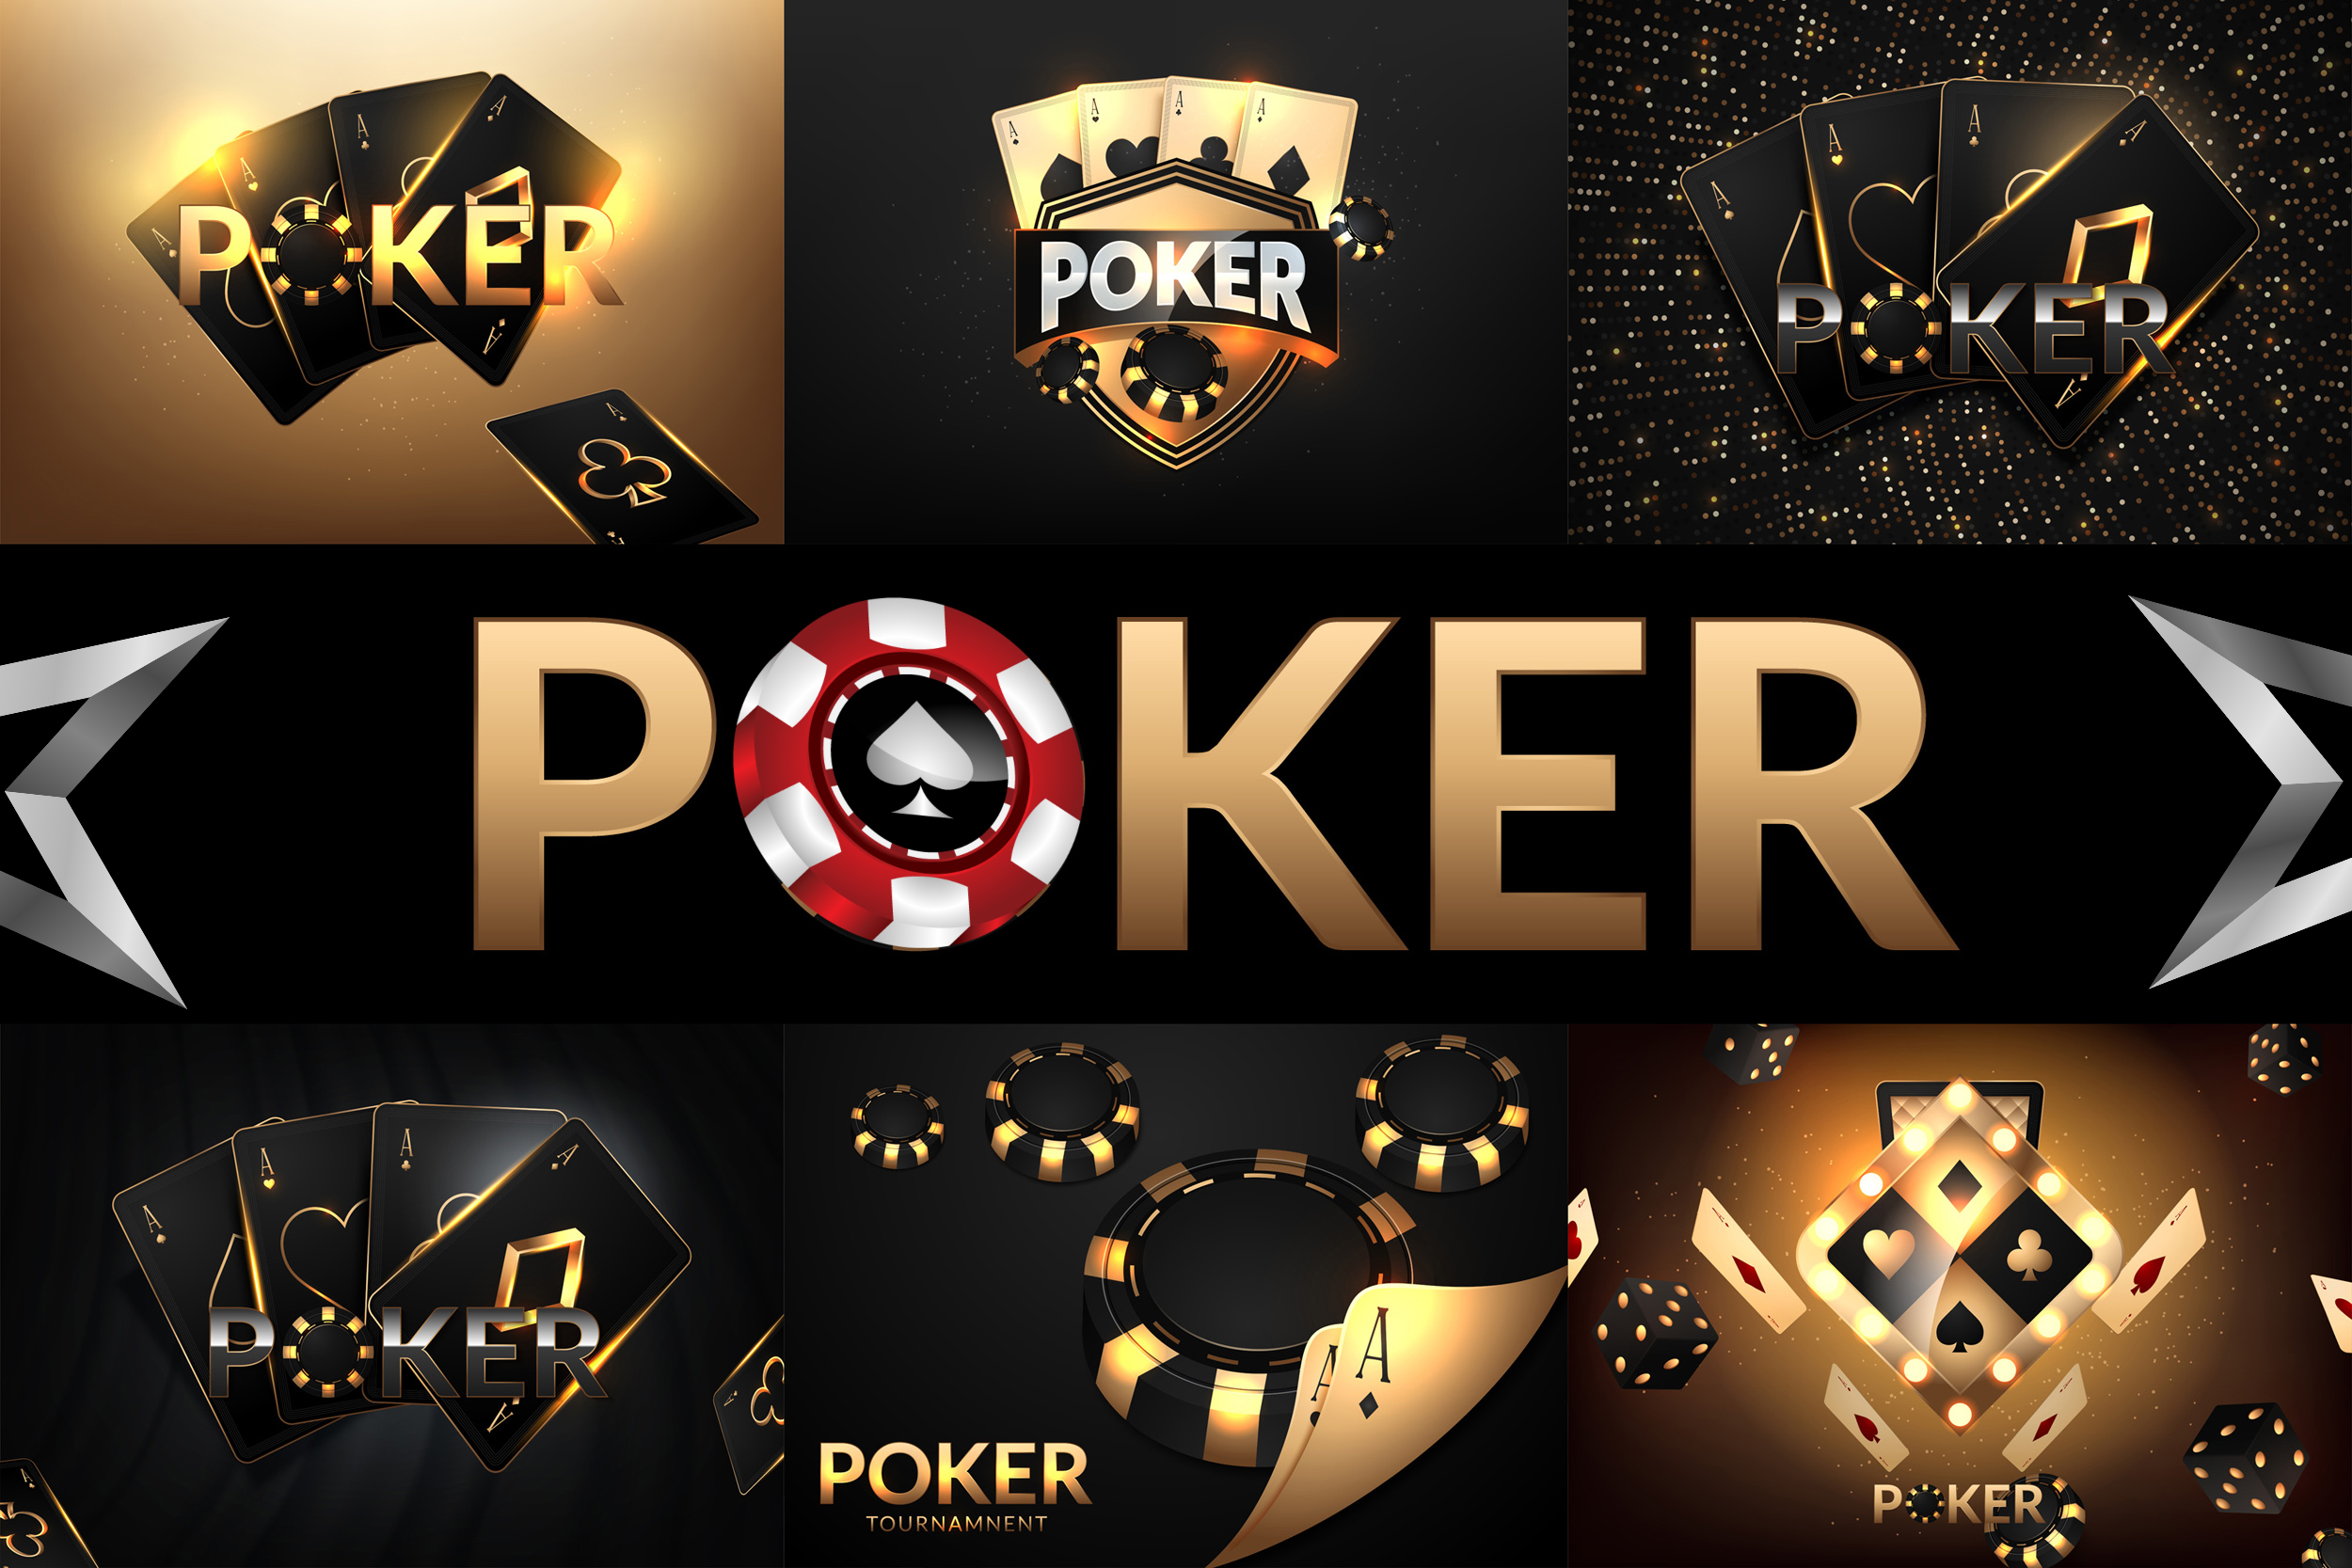 I Will Design High Quality CASINO, POKER, UFA And GAMBLING Banner Ads